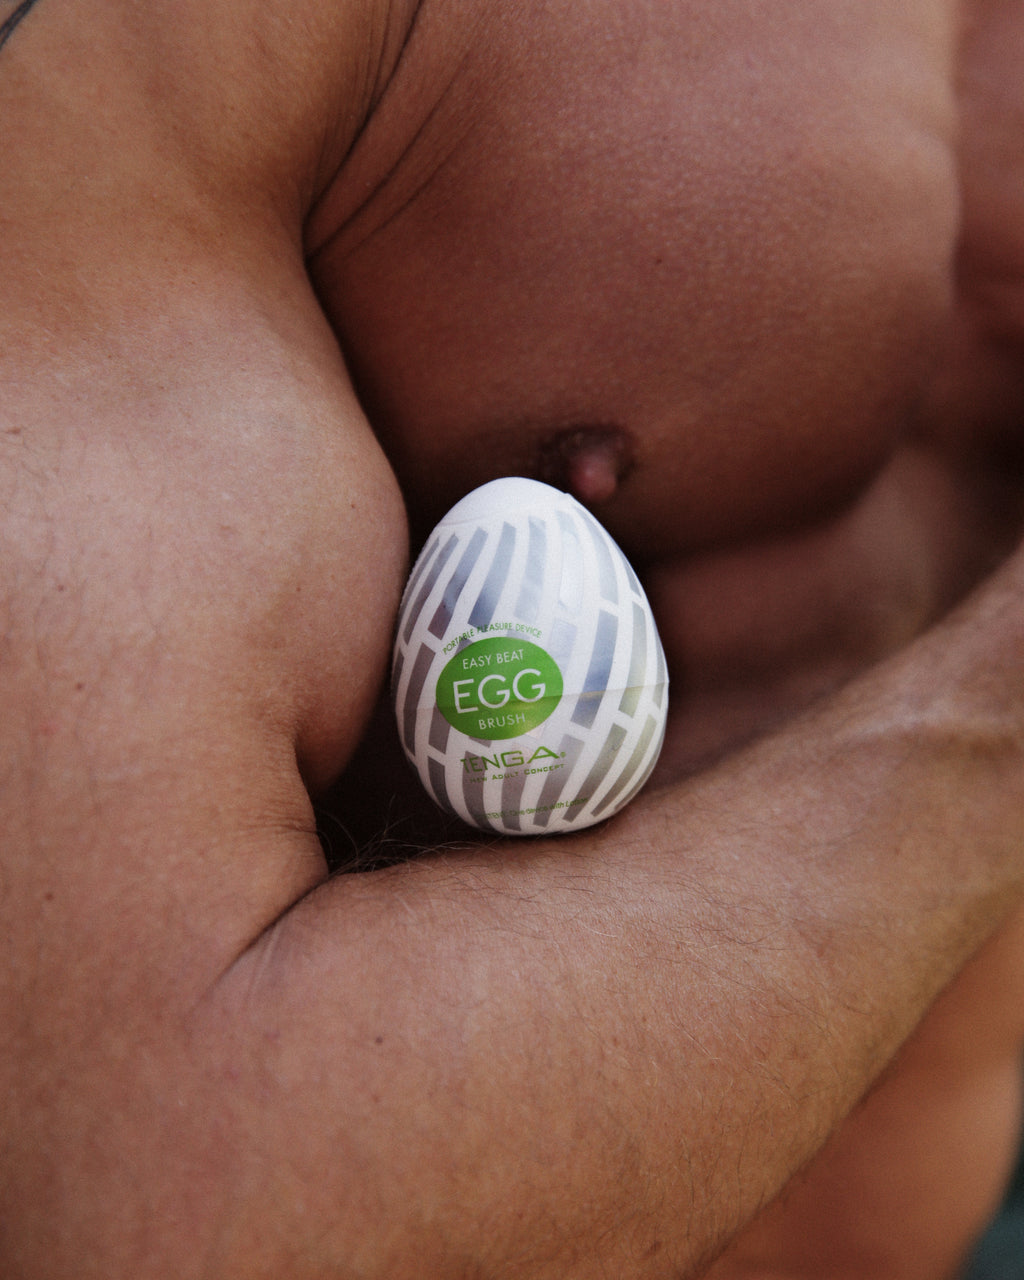 TENGA Easy Beat Egg - Brush